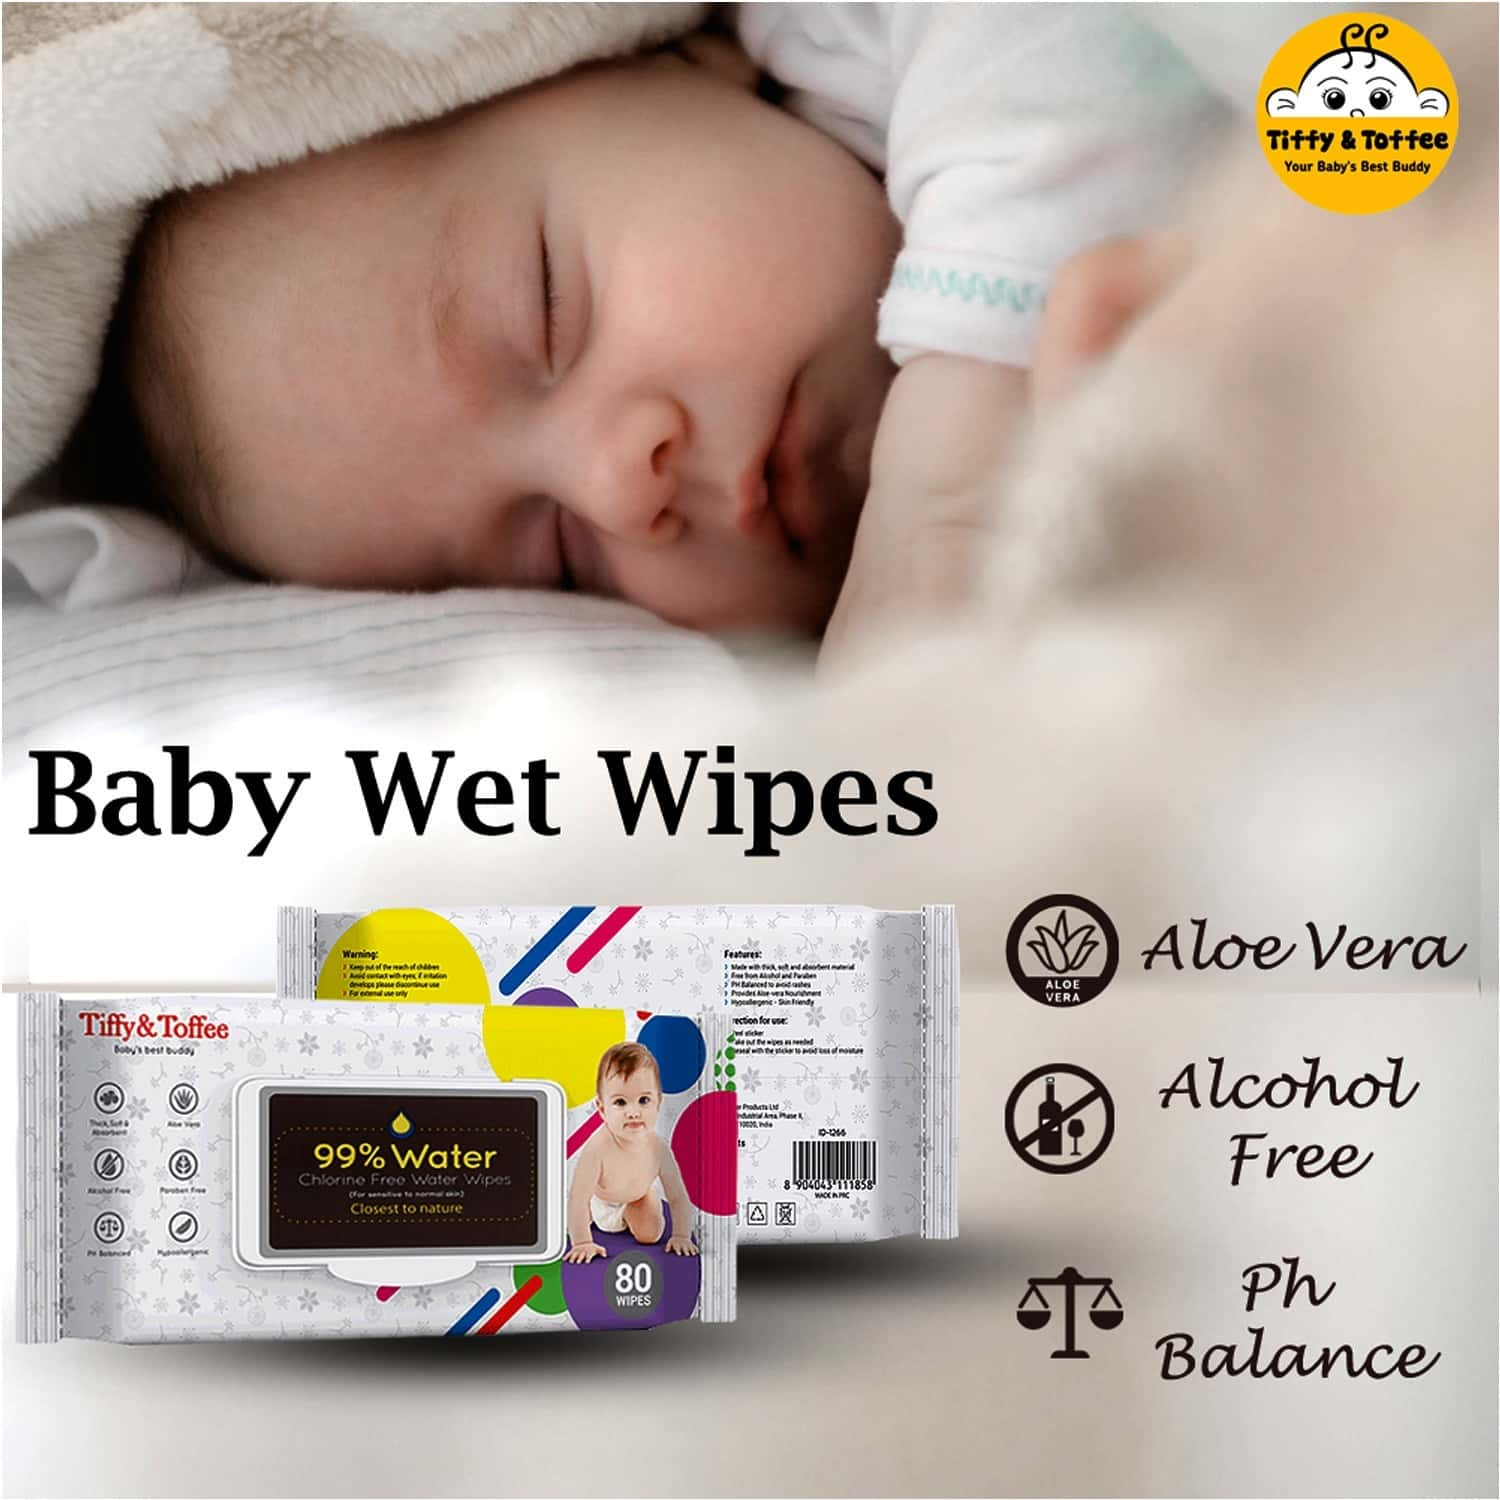 Tiffy & Toffee 99% Water Baby Wet Wipes (pack Of 6 X 80's)